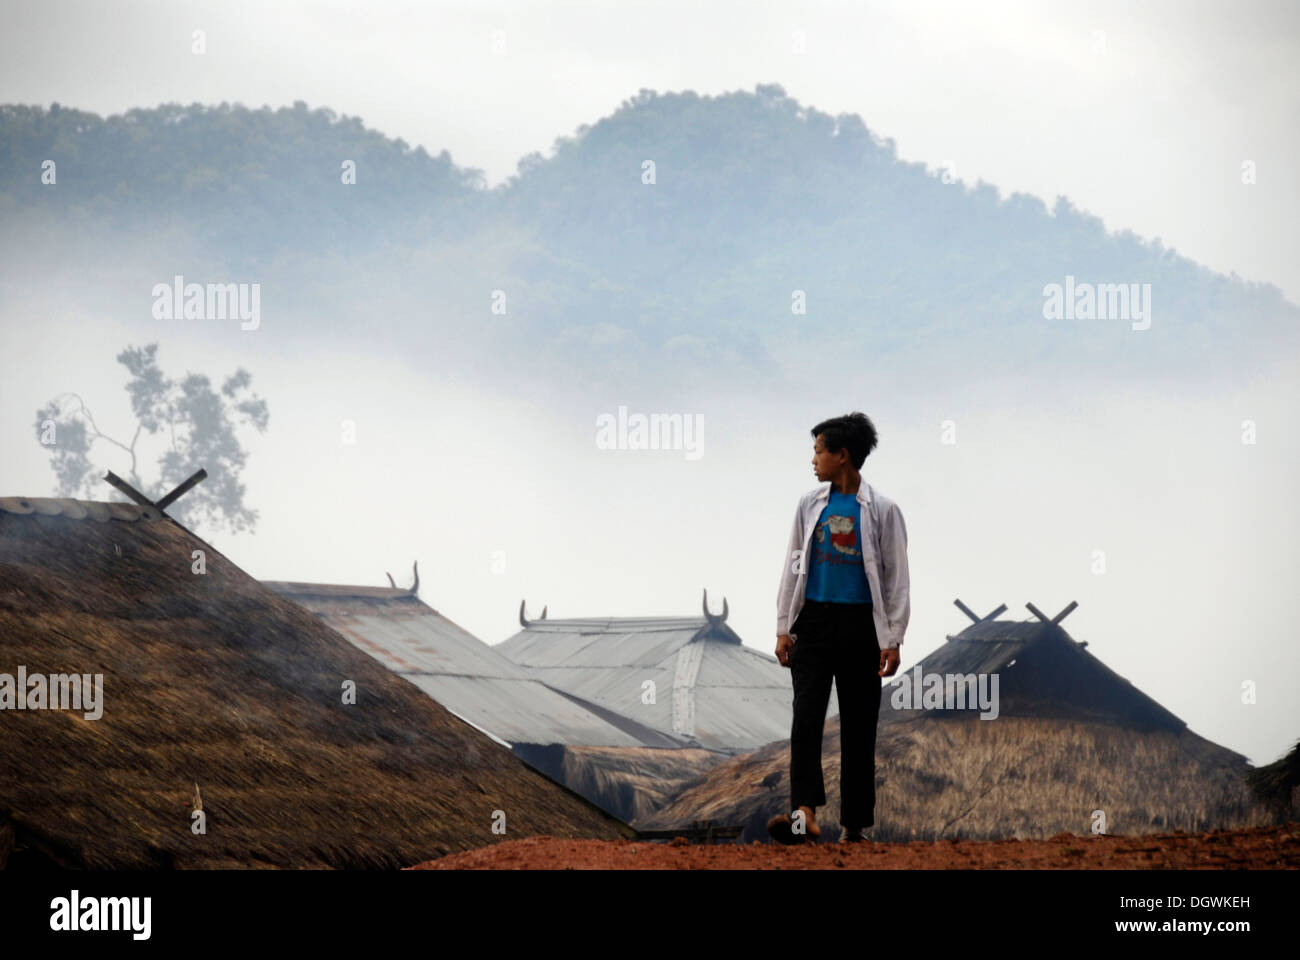 Boy in front of the houses of the Phixor Akha ethnic group, village Ban Mososane, thatched roofs, fog and mountains Stock Photo